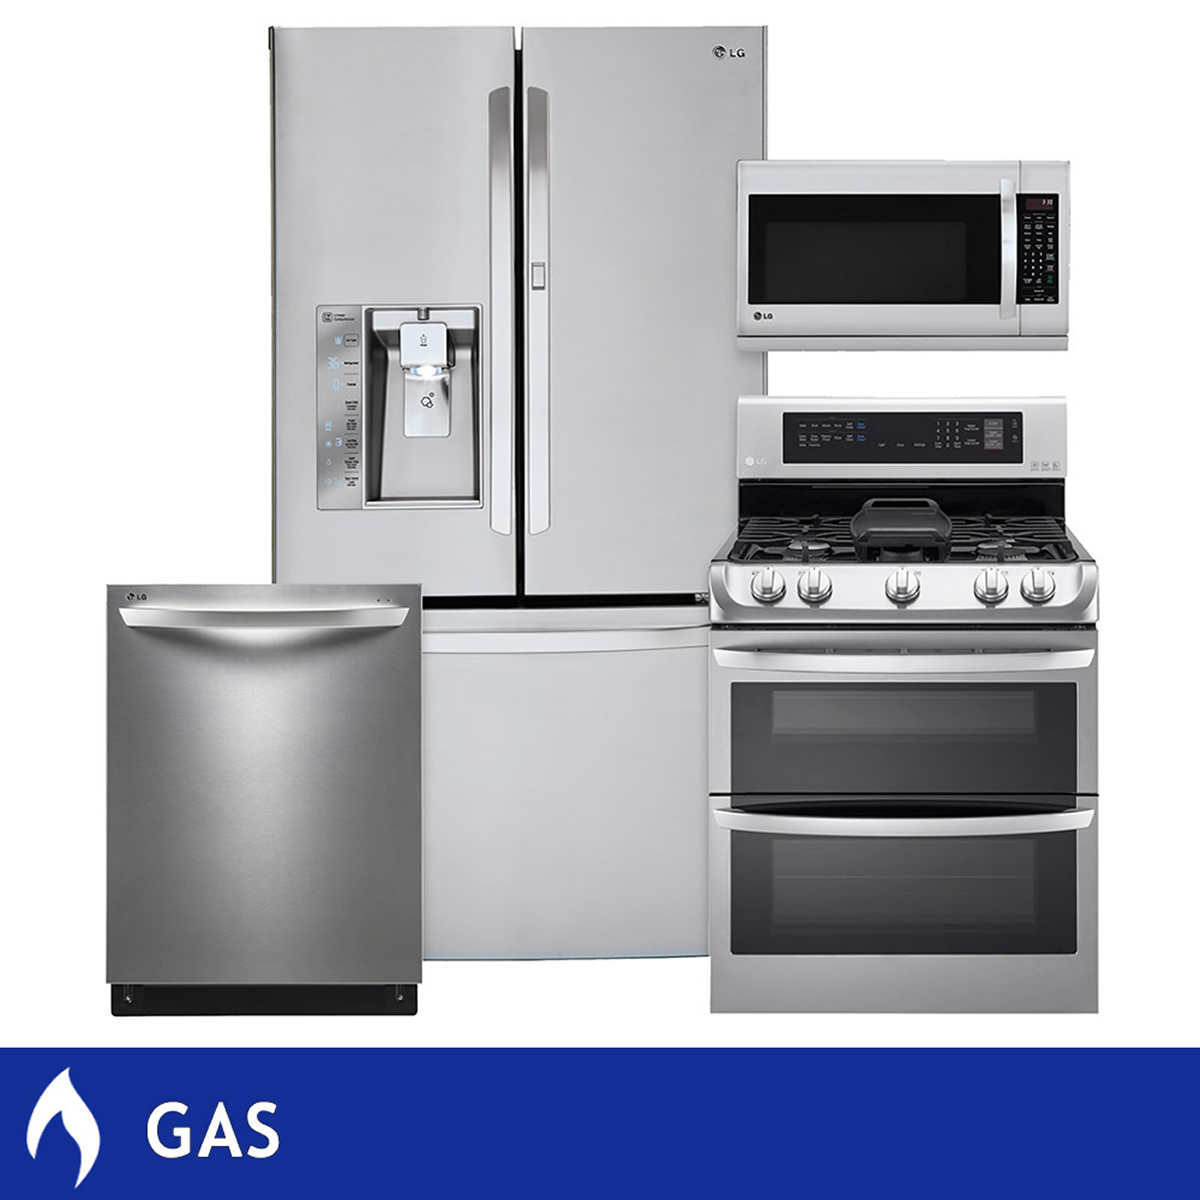 Uncategorized Whirlpool Kitchen Appliances kitchen suites costco out of stock lg 4 piece gas stainless steel 30cuft door in french super